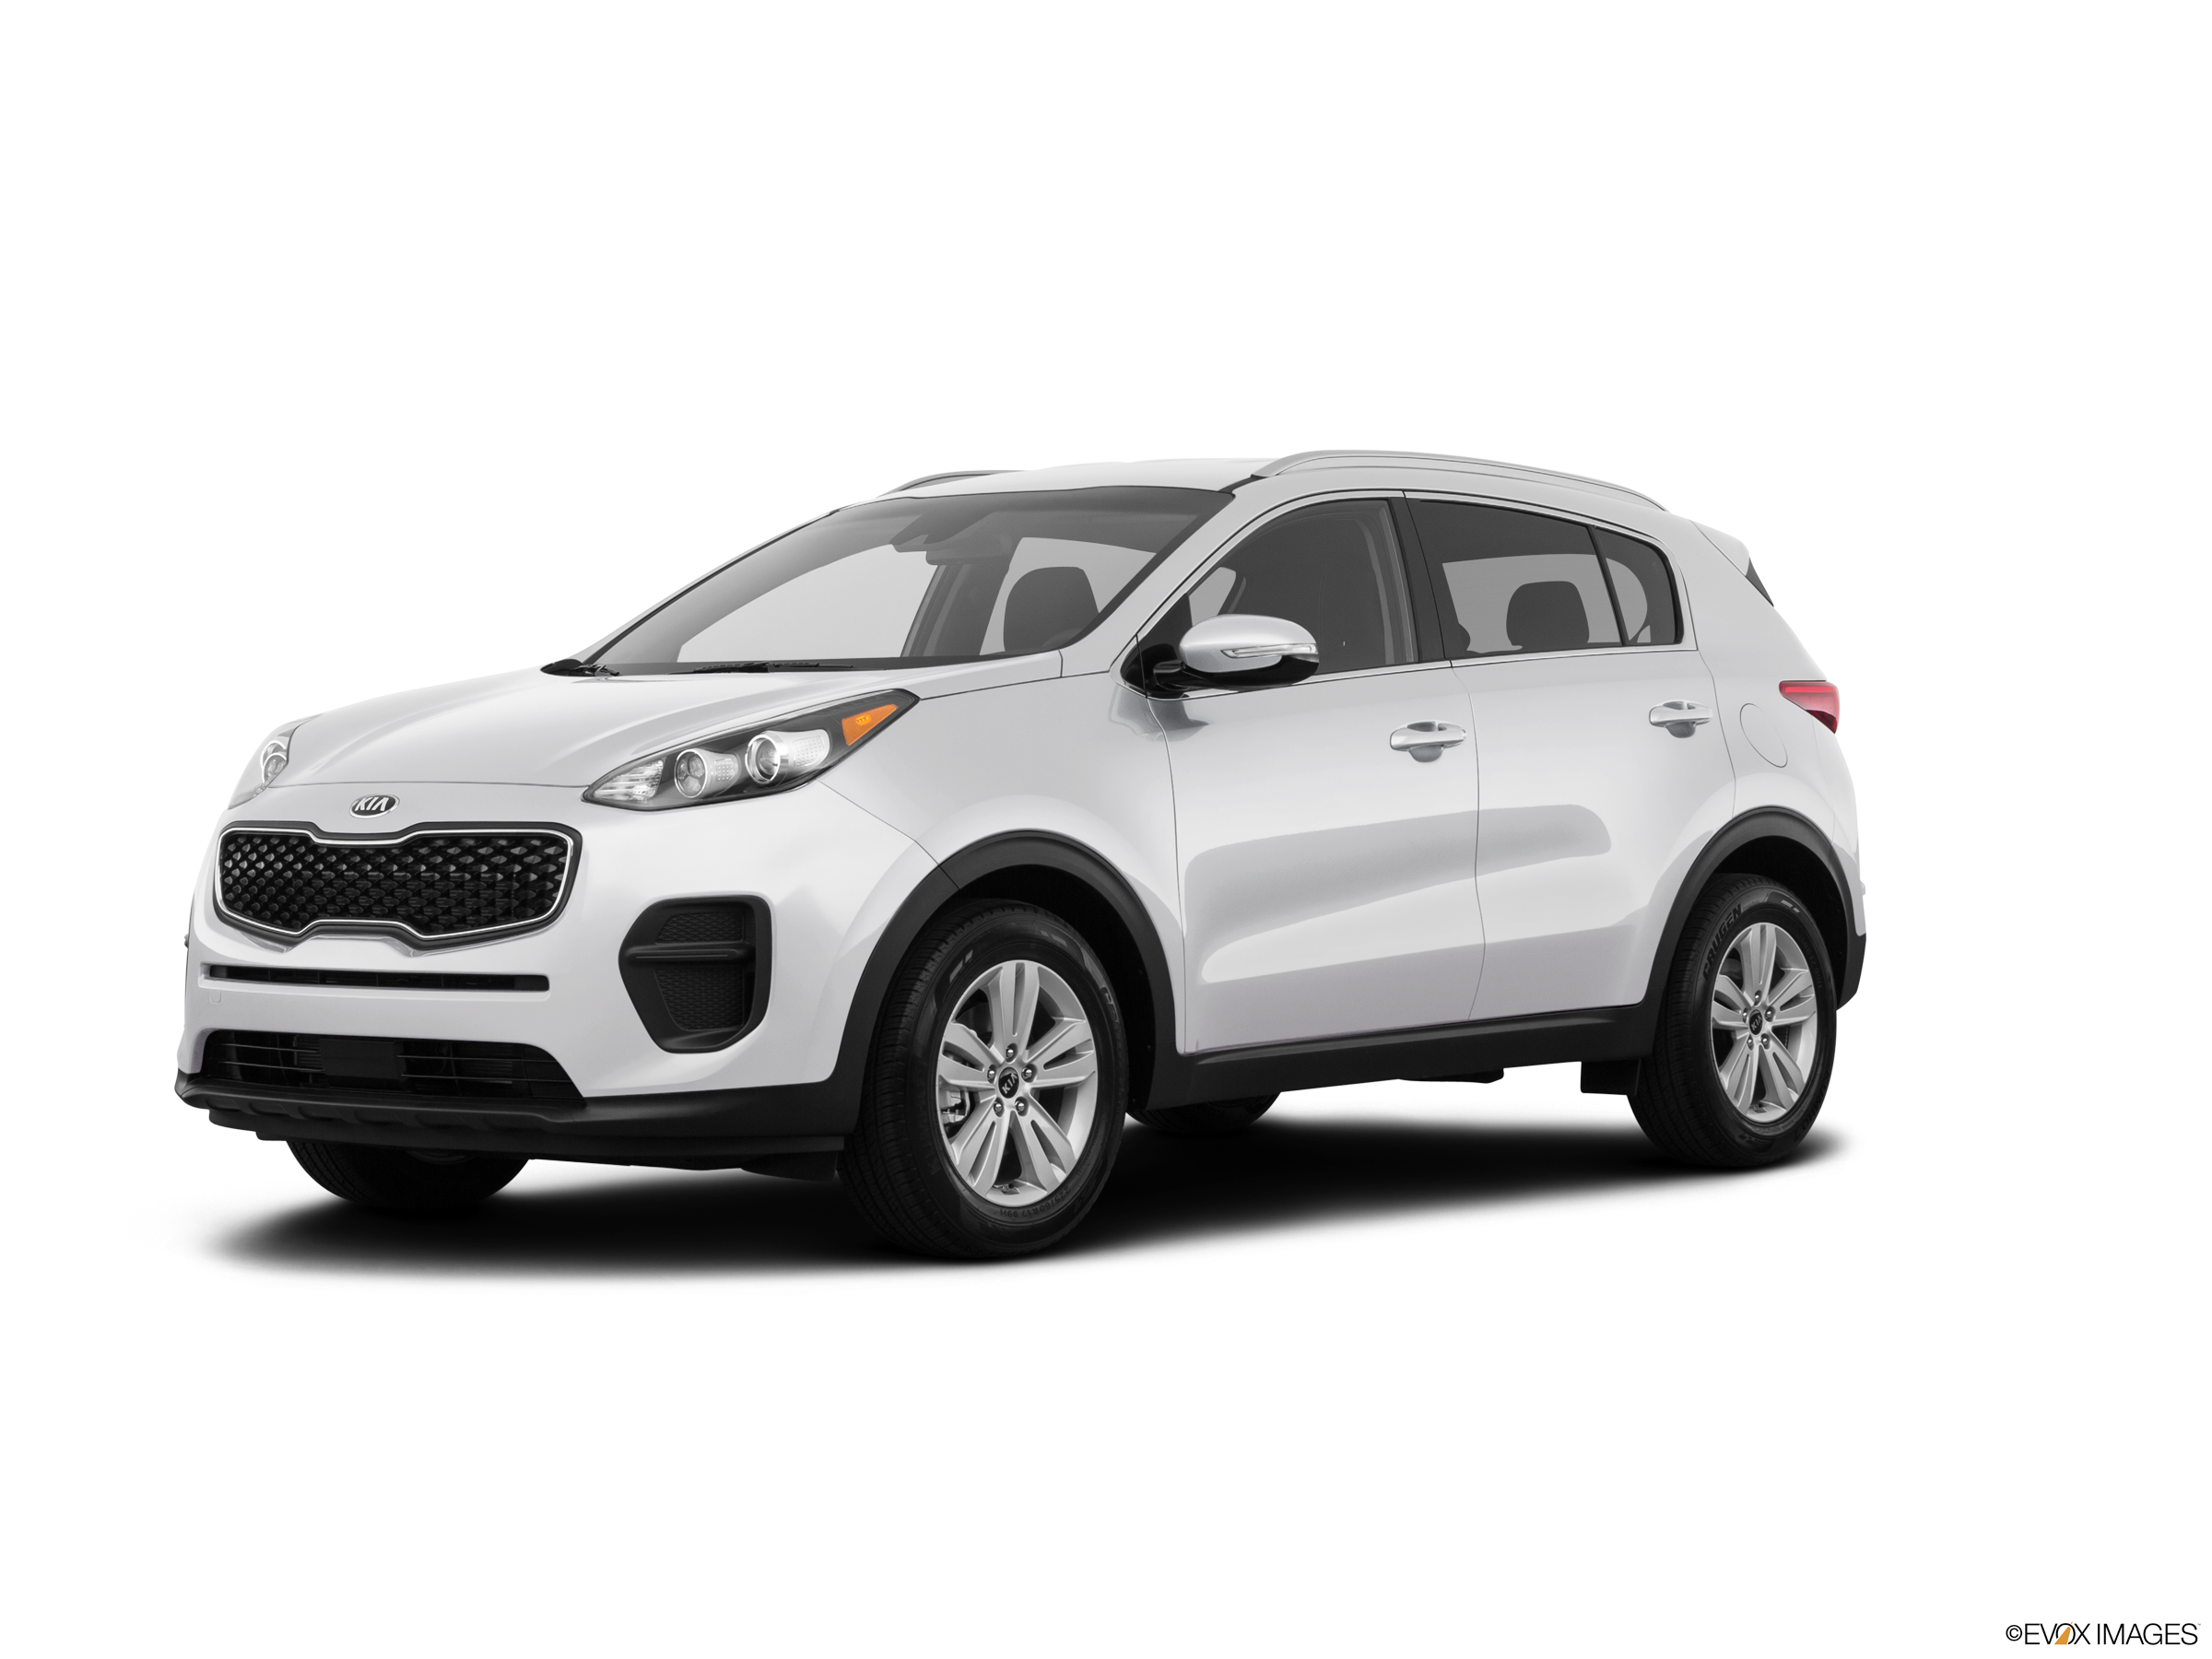 10 Best SUVs Under $25,000 - 2018 Kia Sportage